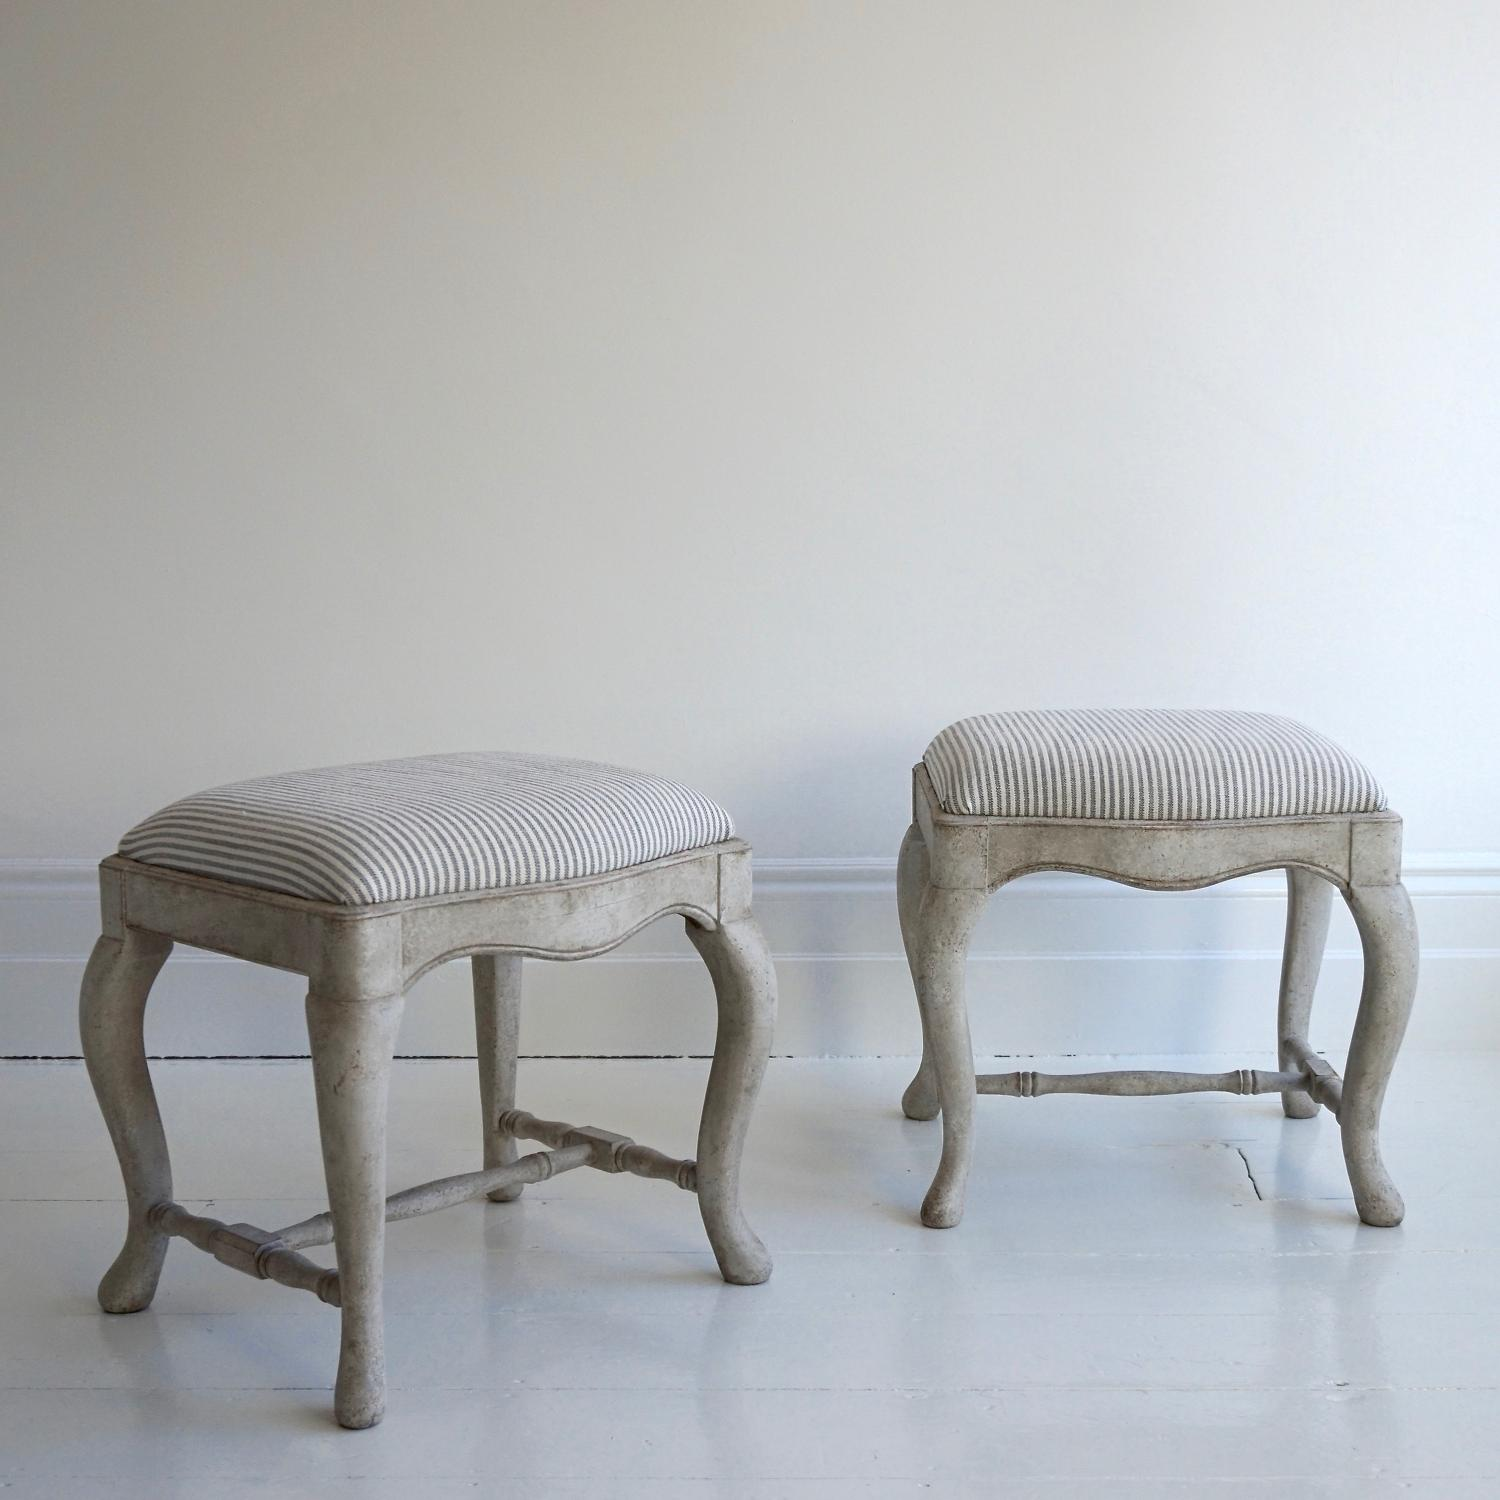 PAIR OF BESPOKE HAND CARVED SWEDISH STOOLS